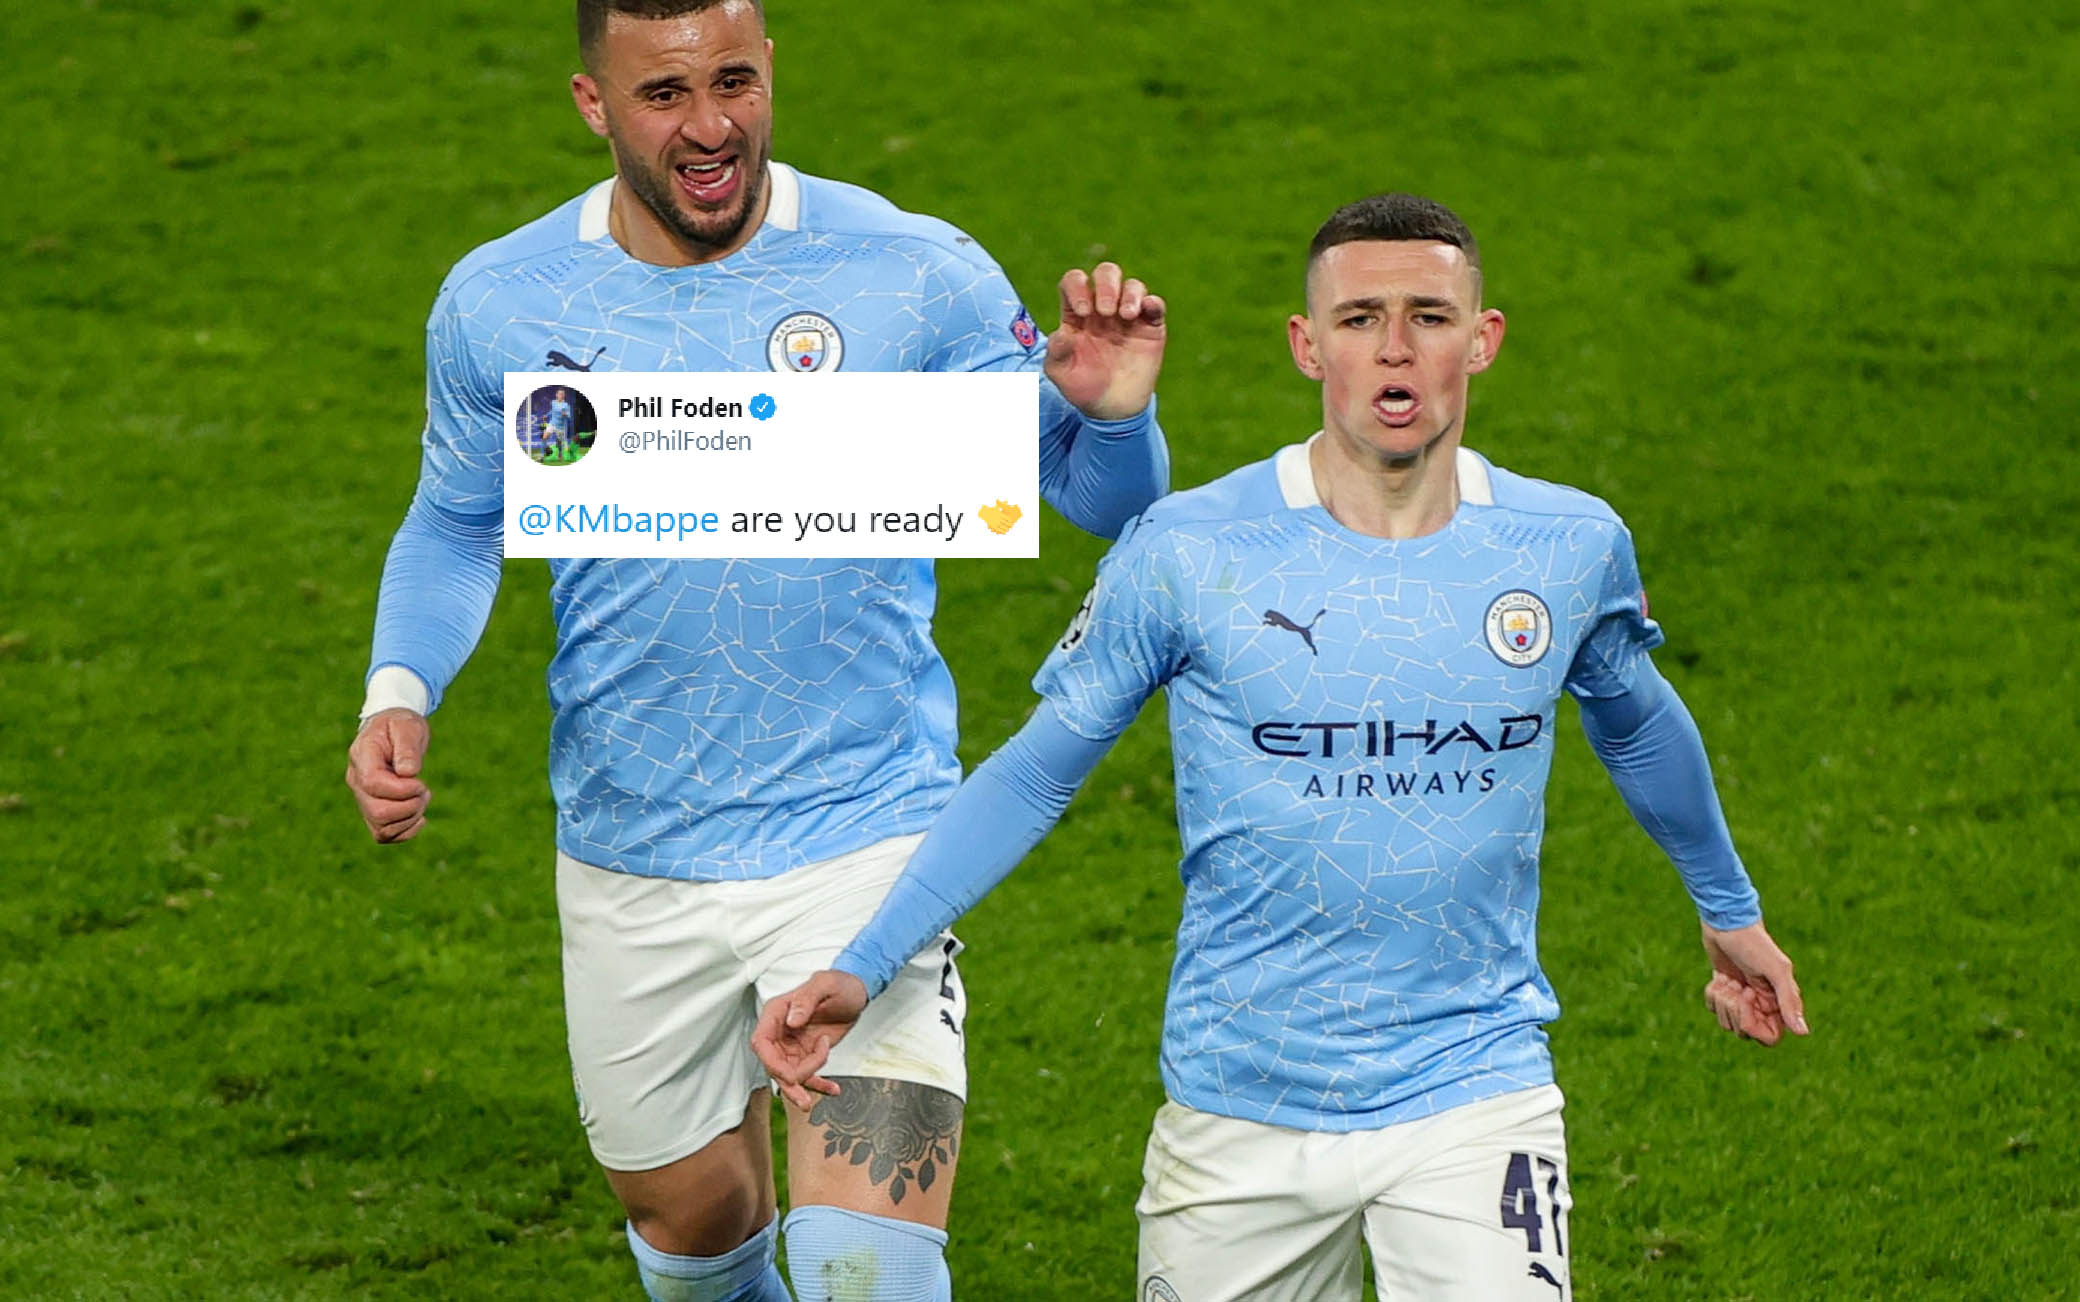 epa09135895 Manchester City's Phil Foden (R) celebrates after scoring the 2-1 with Manchester City's Kyle Walker during the UEFA Champions League quarter final, second leg soccer match between Borussia Dortmund and Manchester City in Dortmund, Germany, 14 April 2021.  EPA/FRIEDEMANN VOGEL / POOL